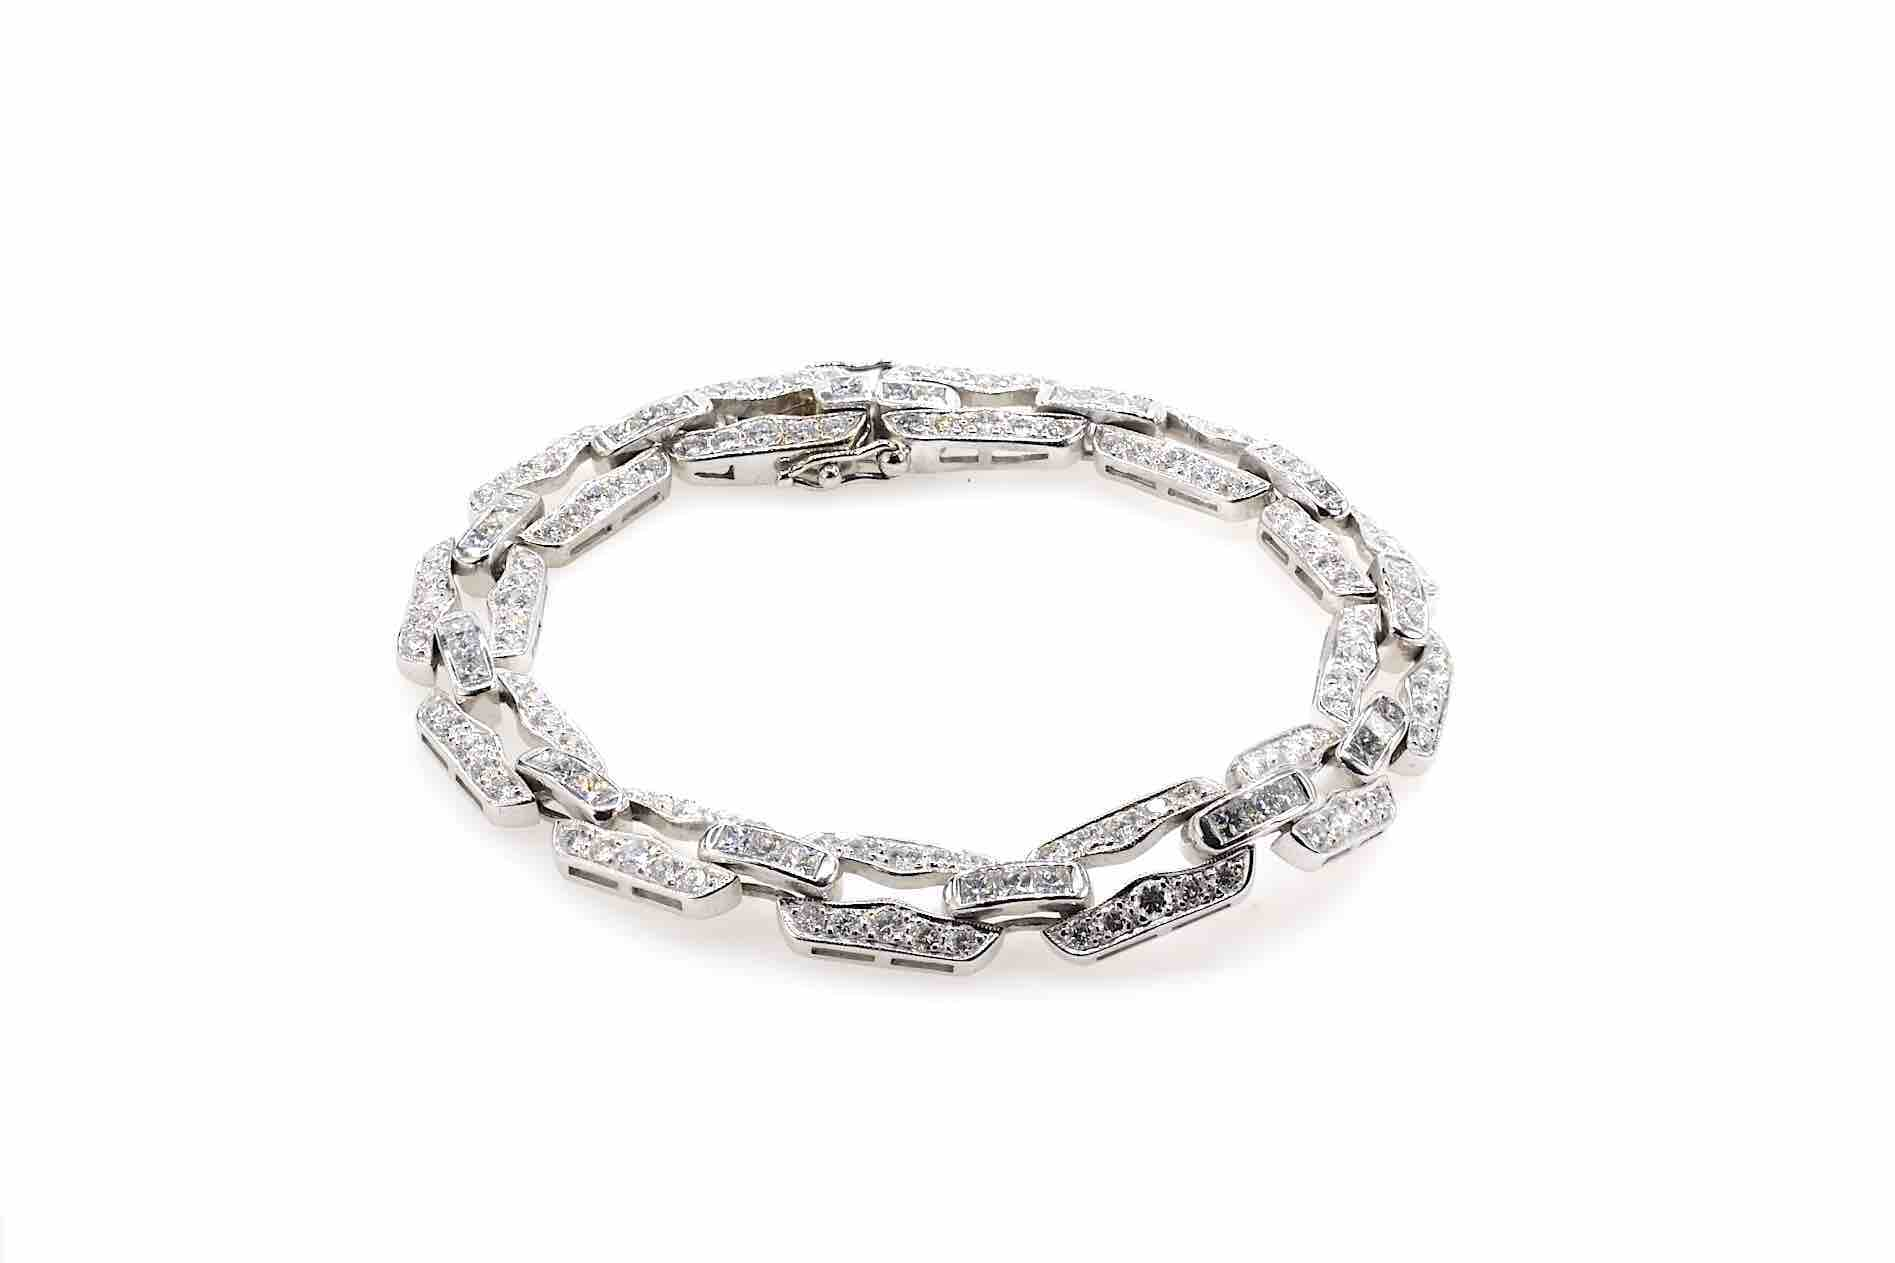 Bracelet diamants en or blanc 18k